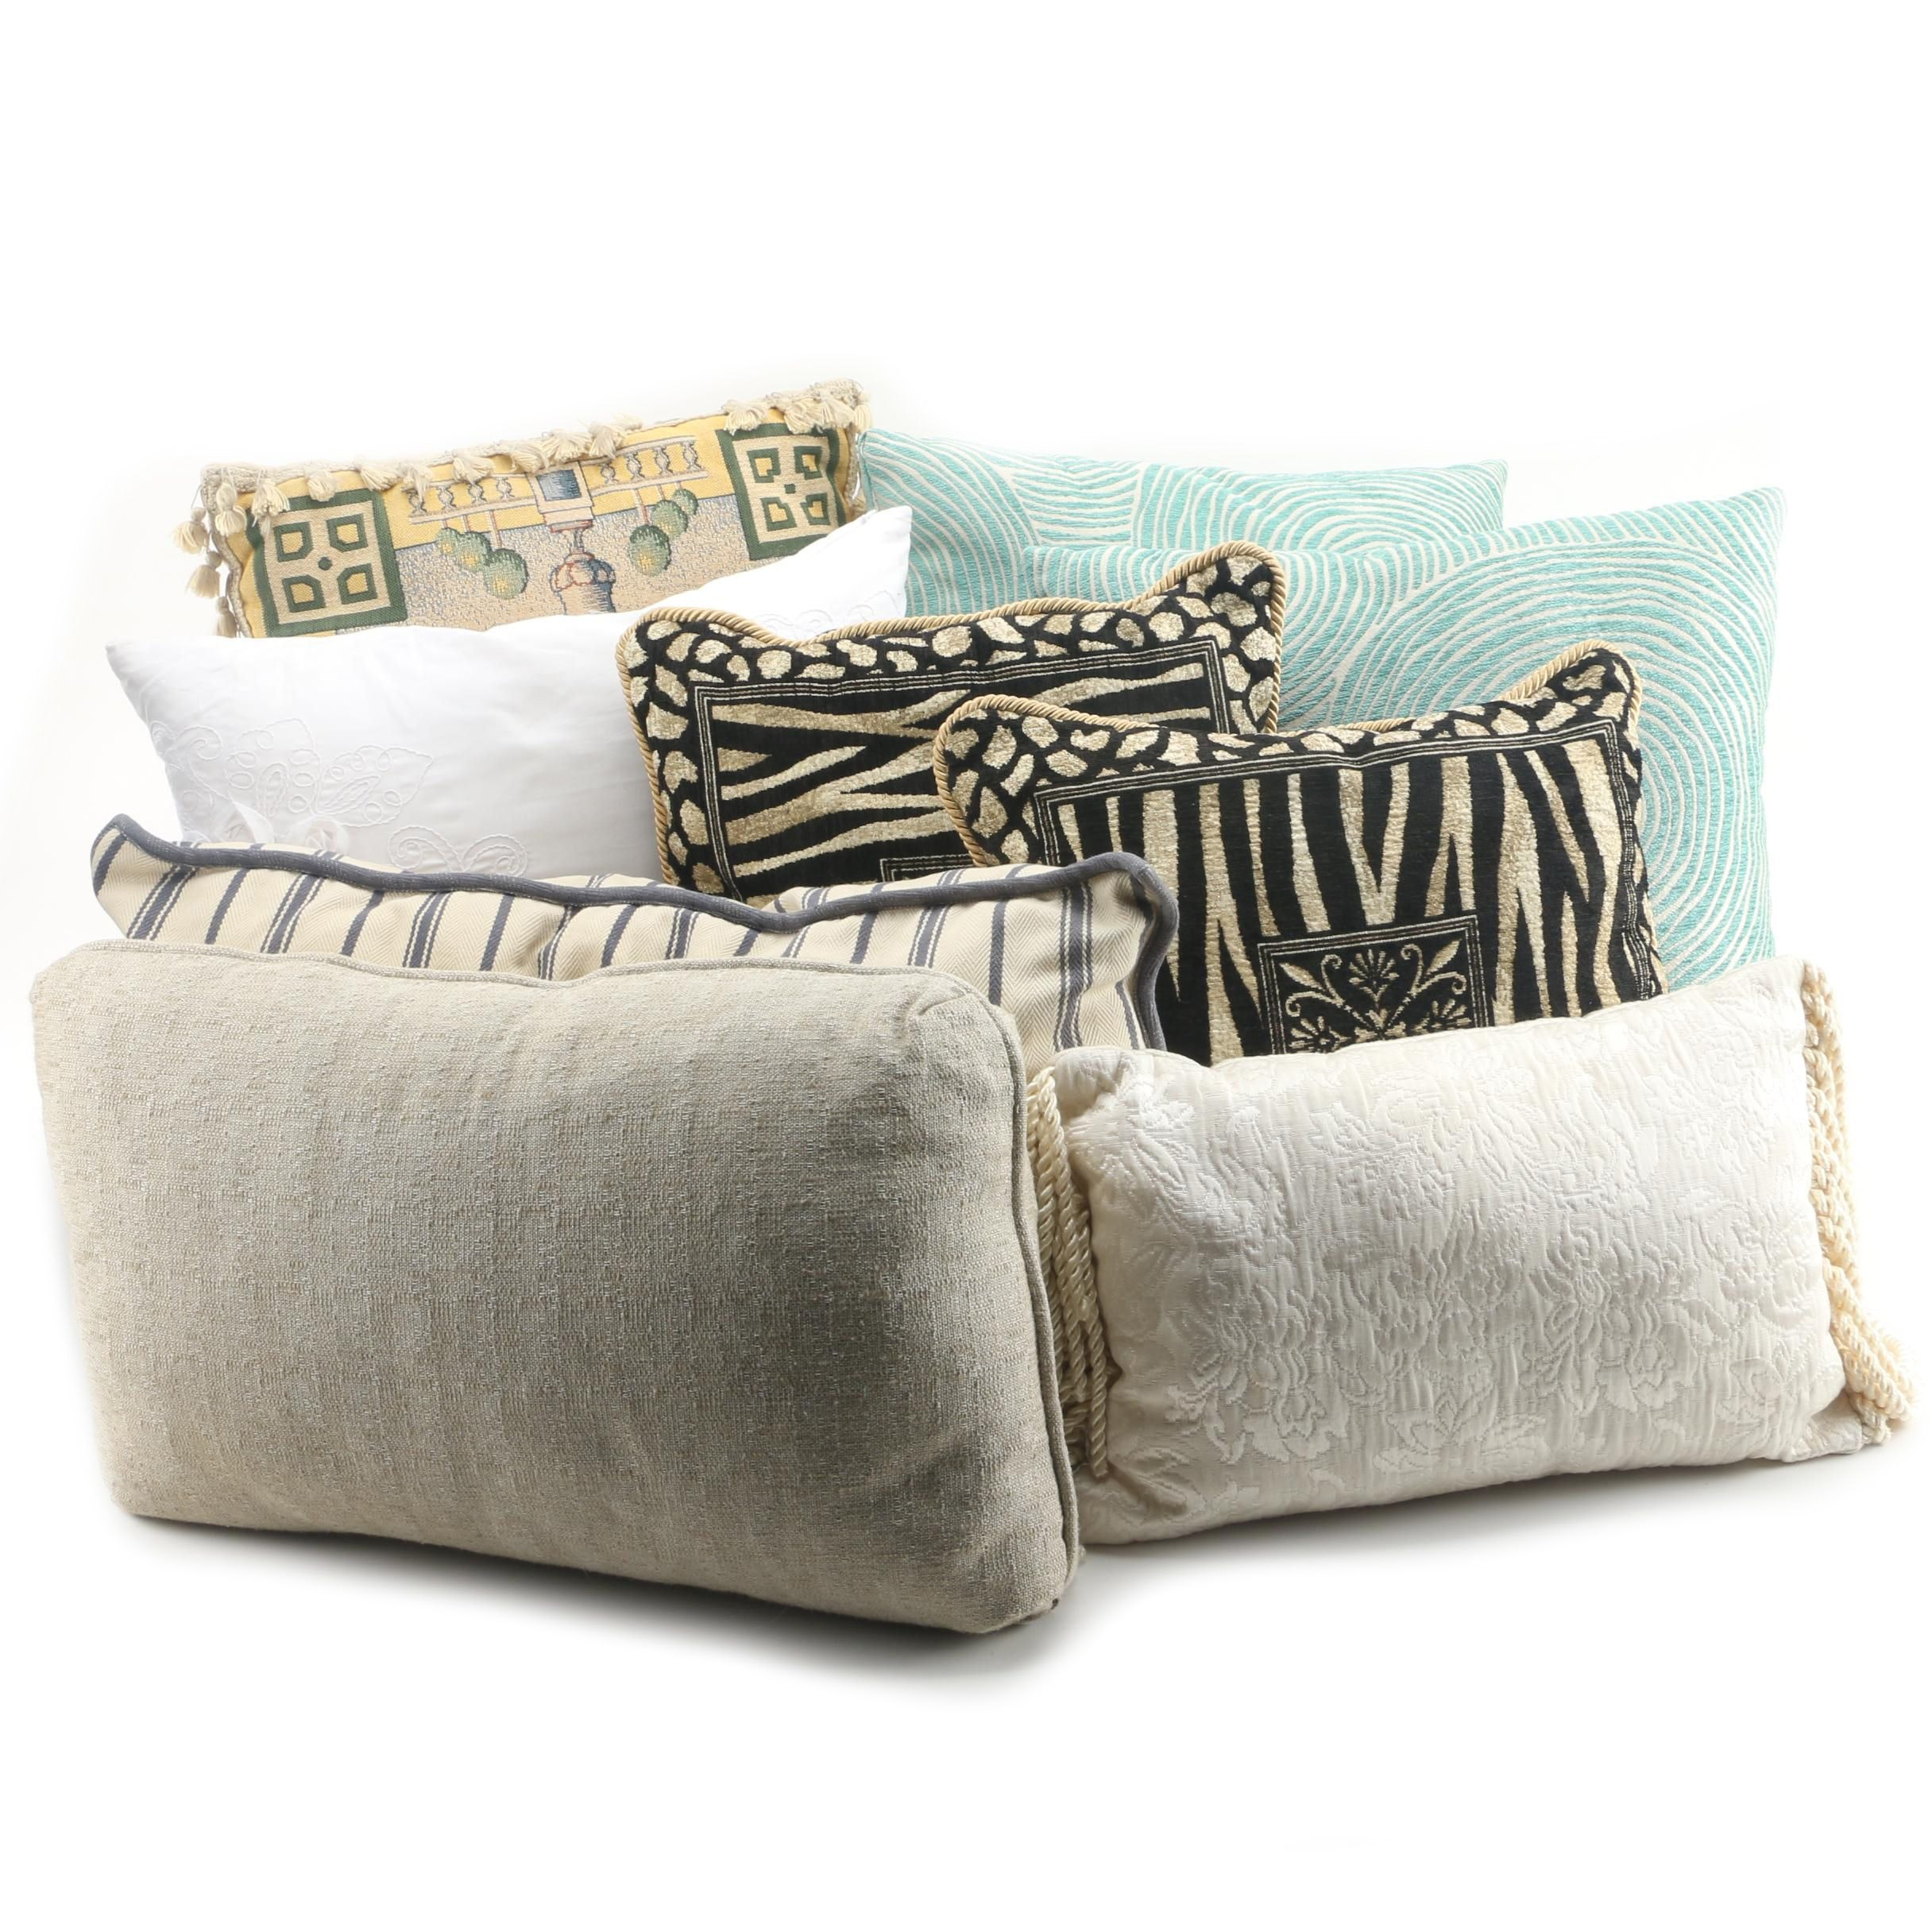 Pillows Featuring Better Homes and Gardens